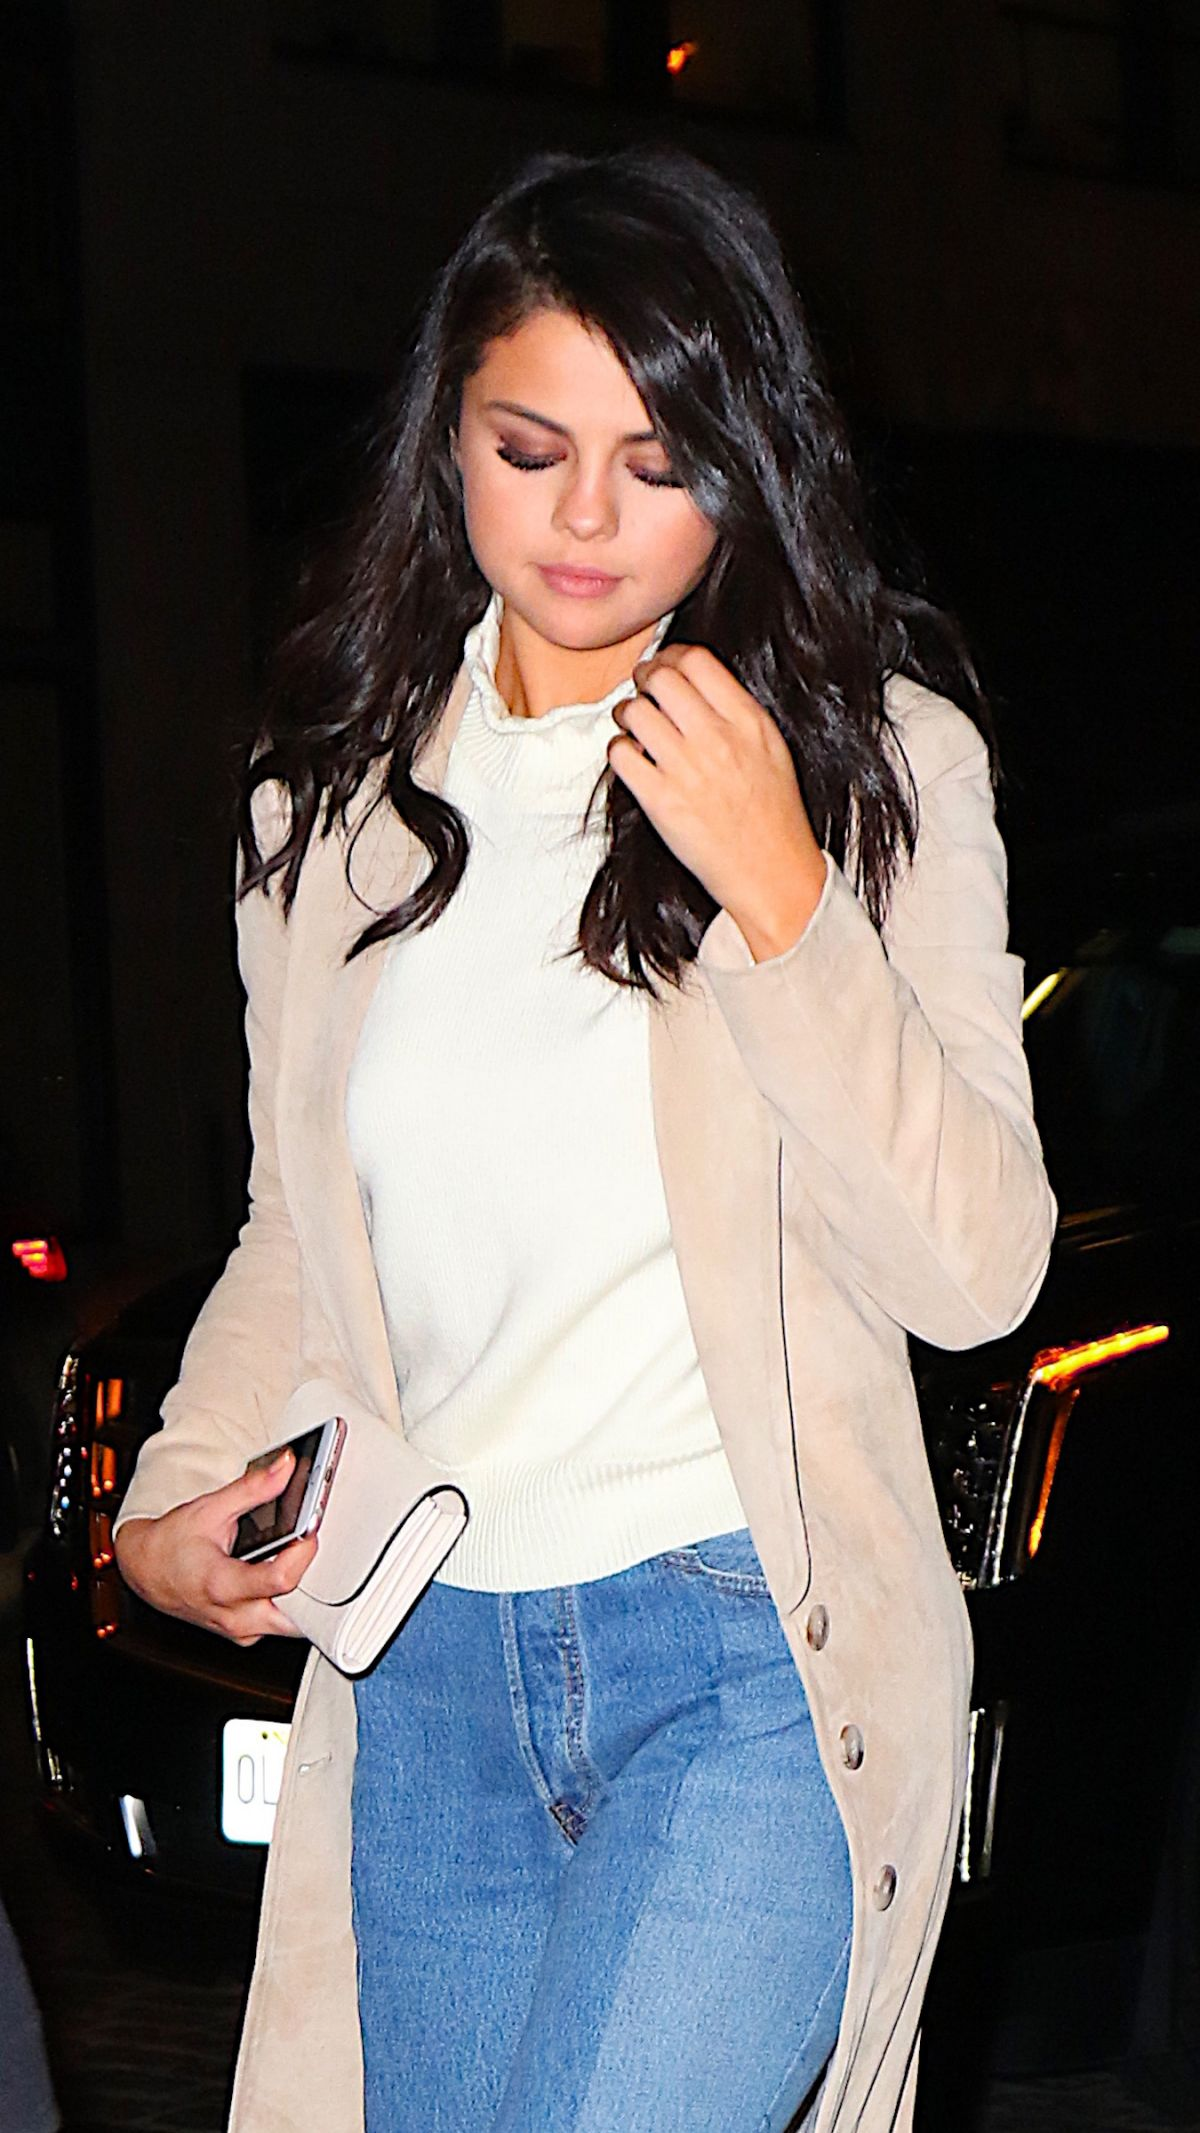 selena gomez at nobu restaurant in new york 01/21/2016 - hawtcelebs